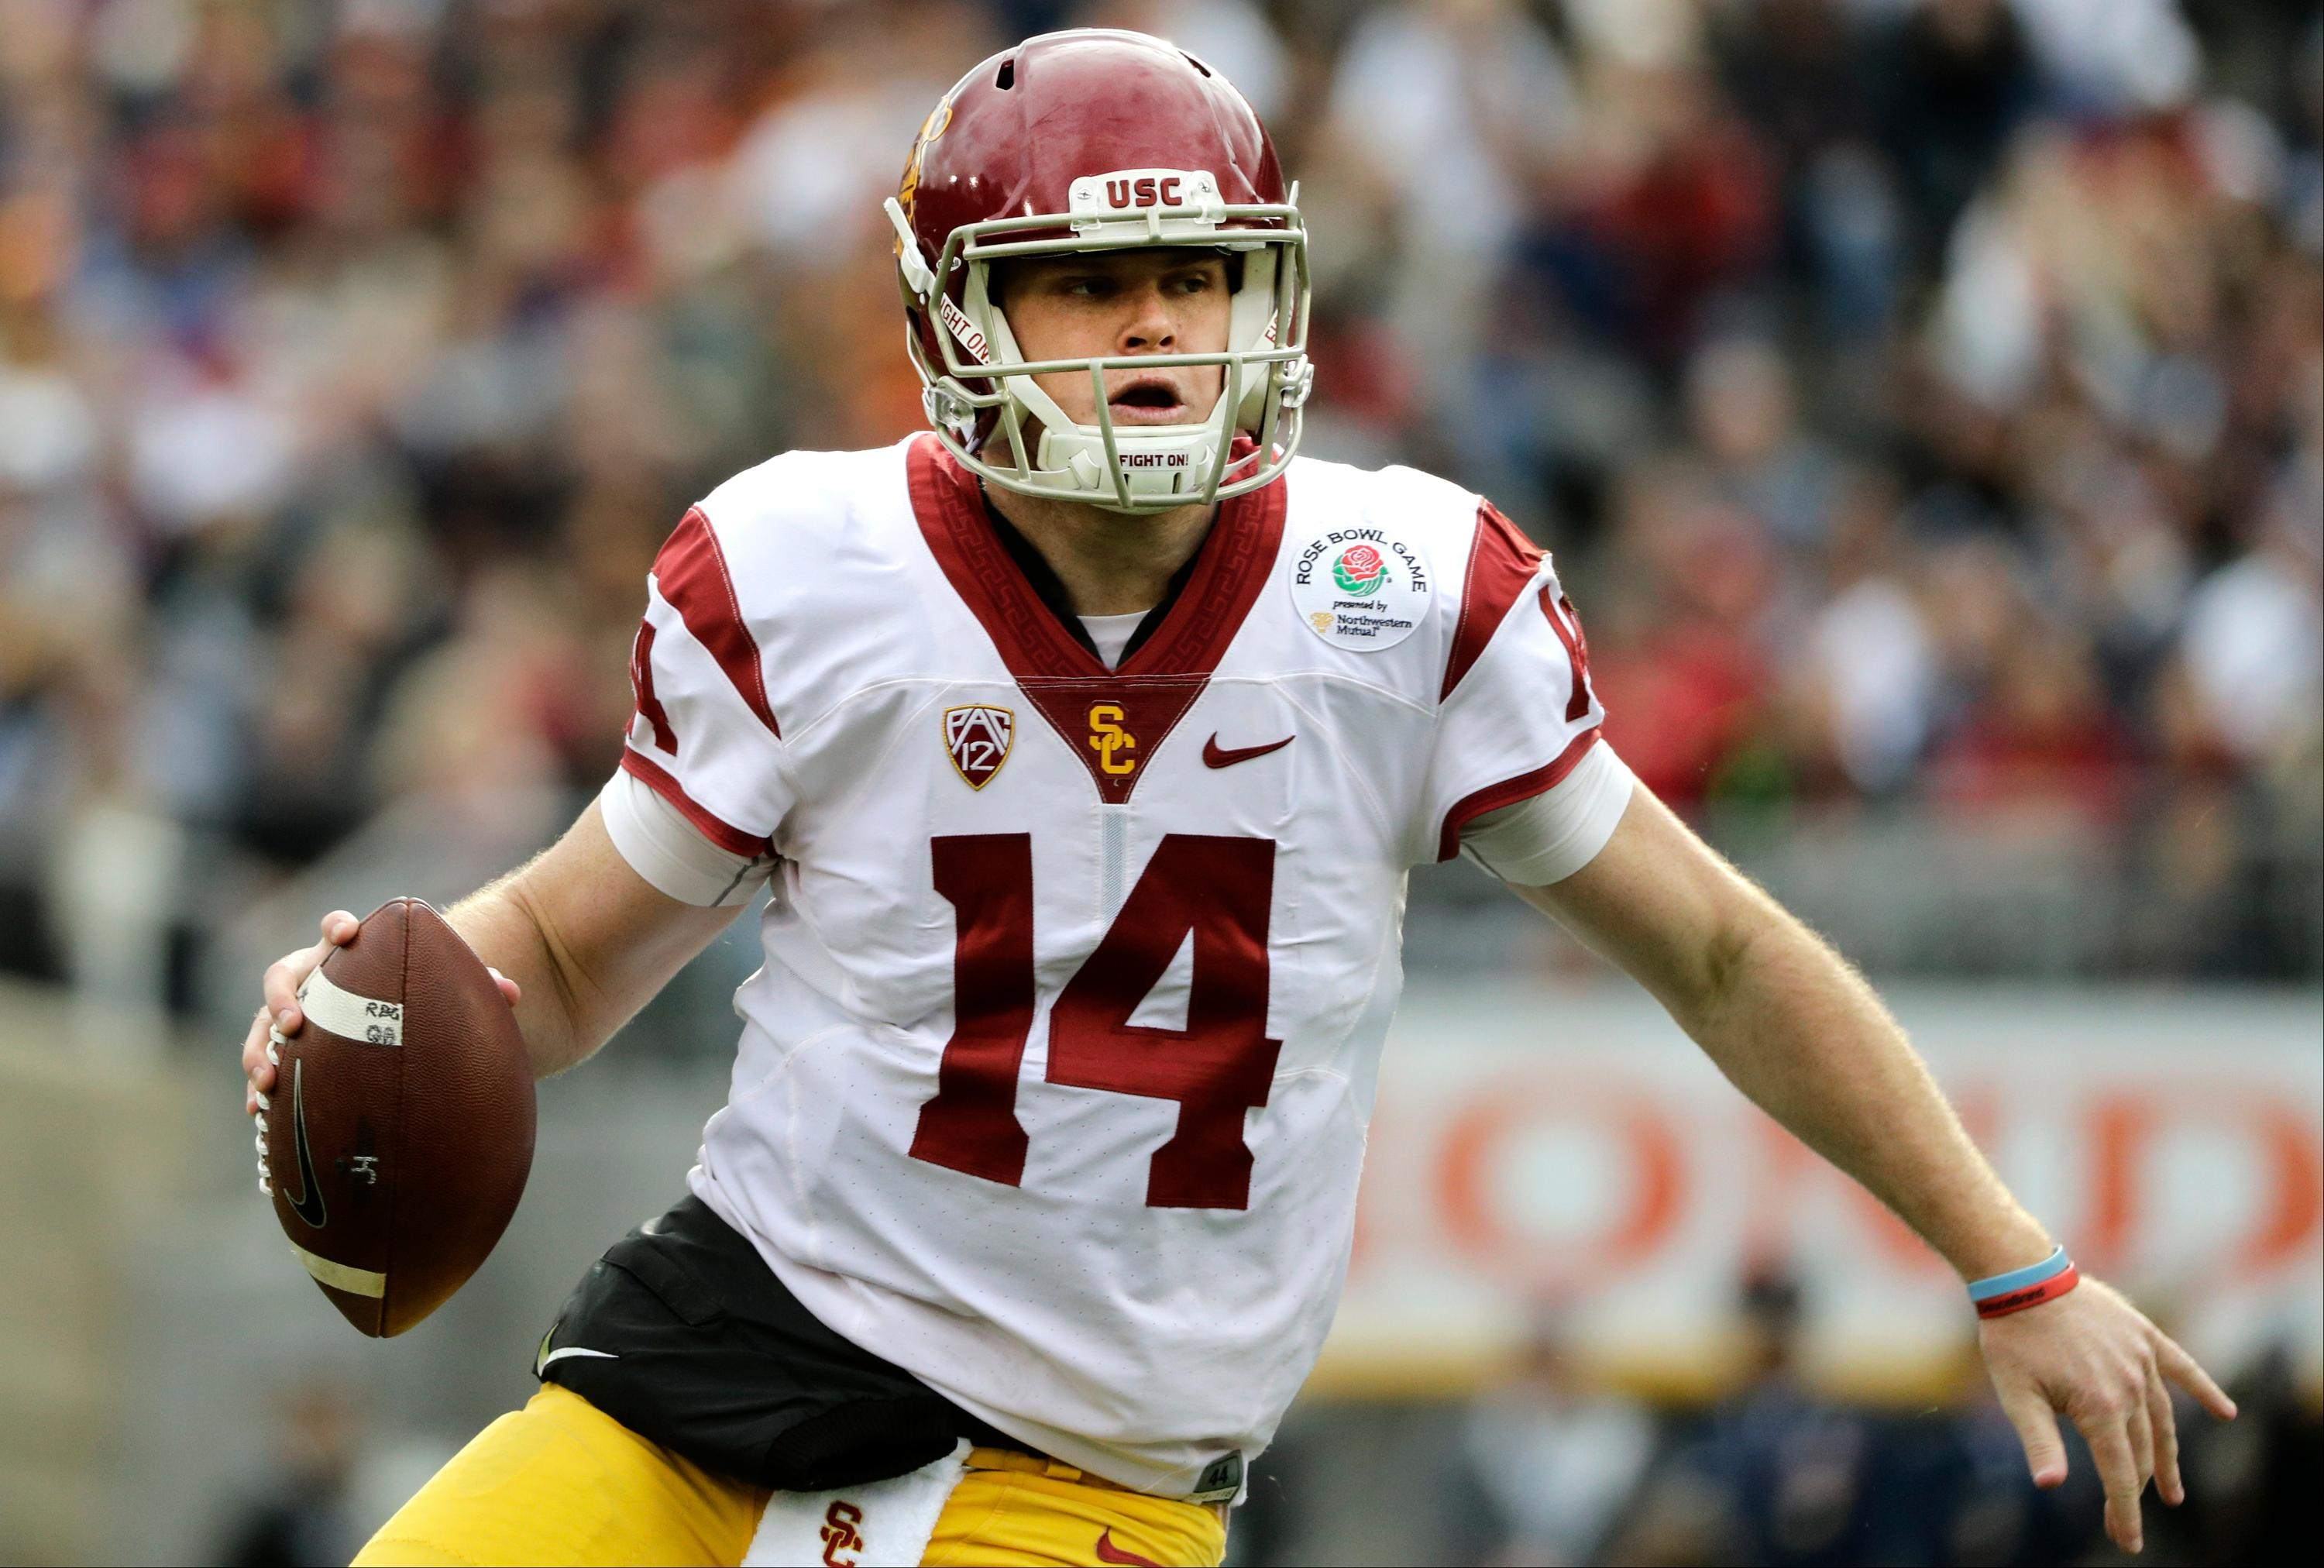 FILE - In this Jan. 2, 2017, file photo, Southern California quarterback Sam Darnold looks to pass against Penn State during the Rose Bowl NCAA college football game in Pasadena, Calif. Oregon running back Royce Freeman, USC quarterback Sam Darnold and UCLA quarterback Josh Rosen are among the Pac-12 players to keep an eye on coming out of spring practice. (AP Photo/Jae C. Hong, File)